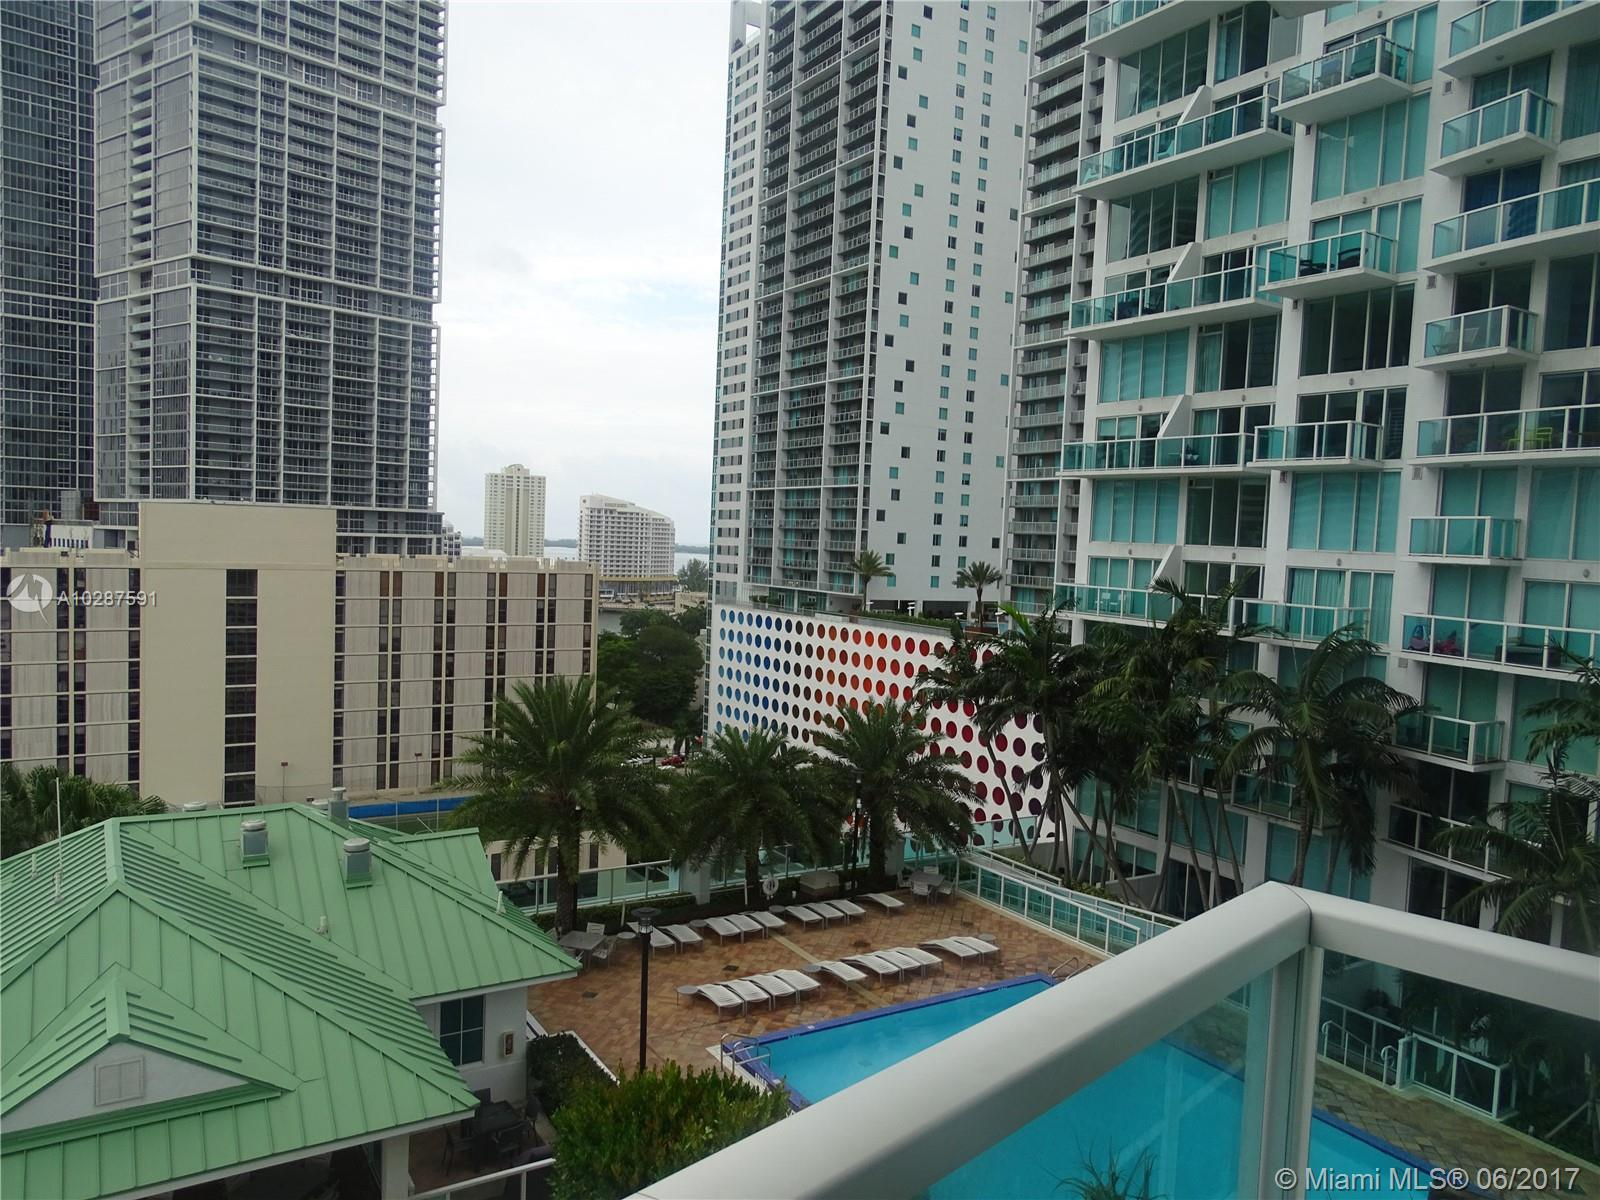 Brickell on the River North image #34